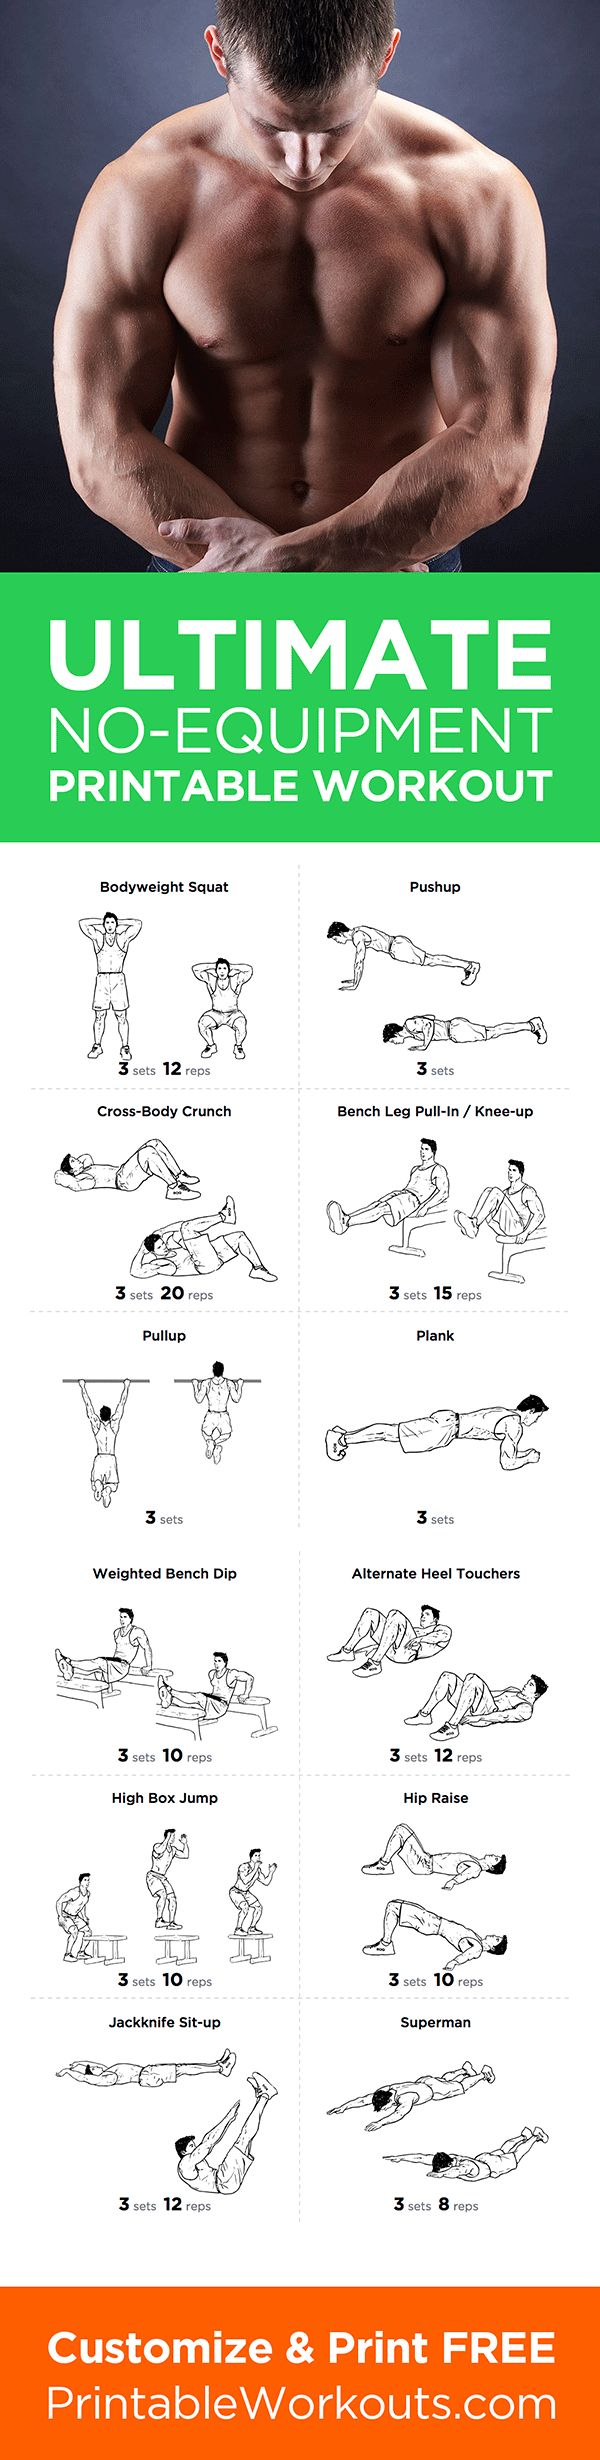 Try this full body no equipment at-home printable workout routine! Customize & print it at http://printableworkouts.com/ultimate-at-home-full-body-no-equipment-printable-workout-routine/